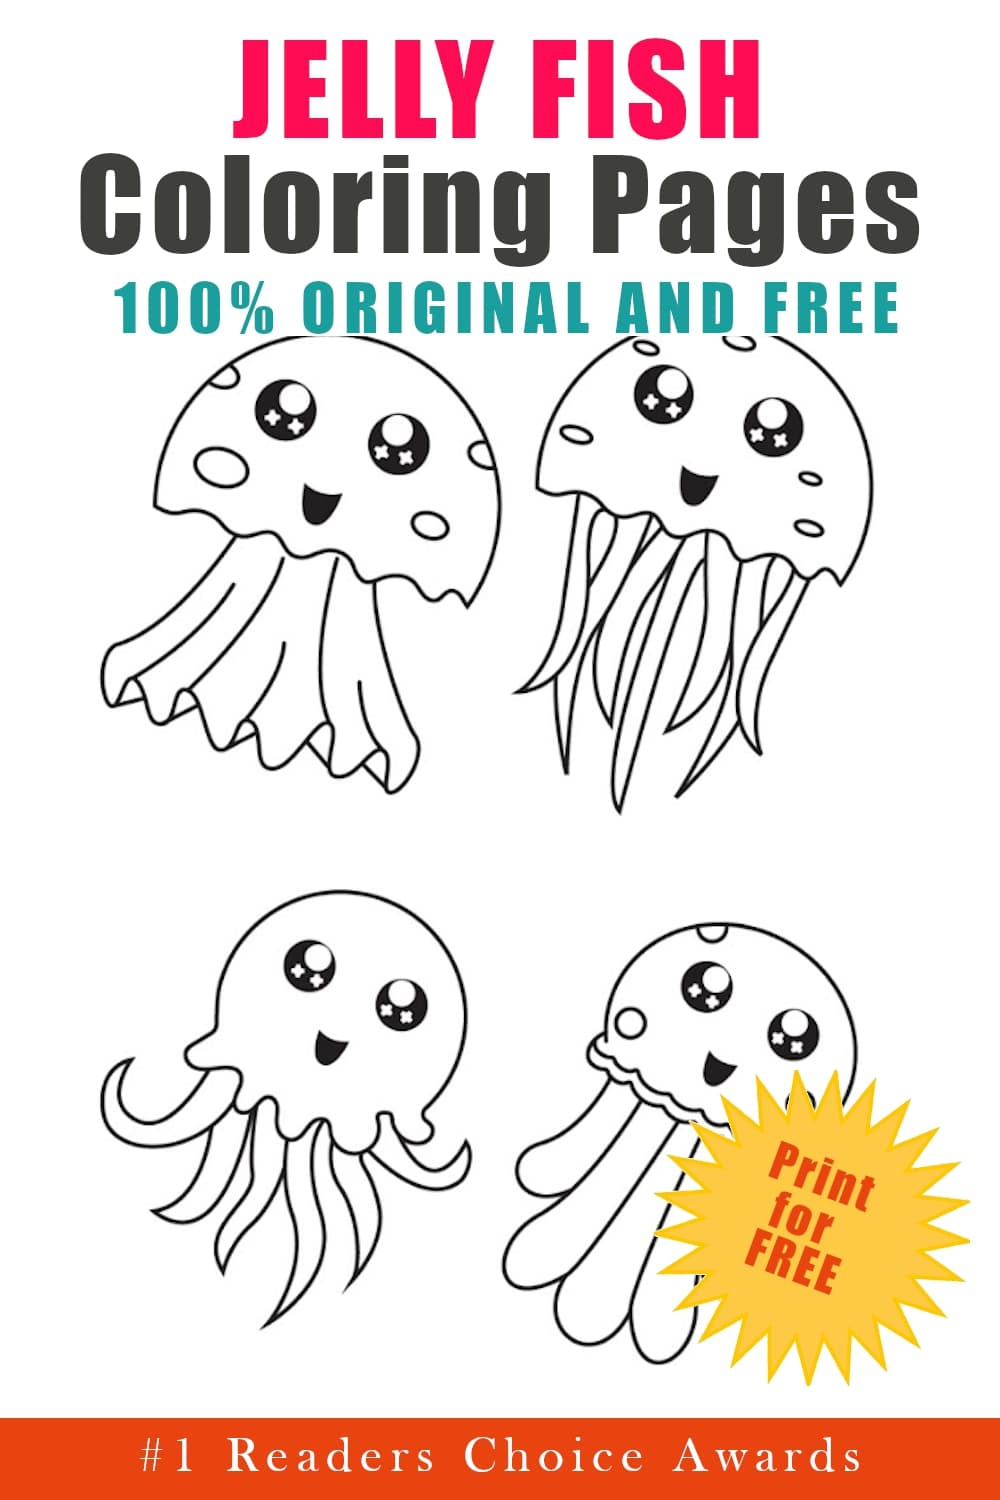 original and free jellyfish coloring pages